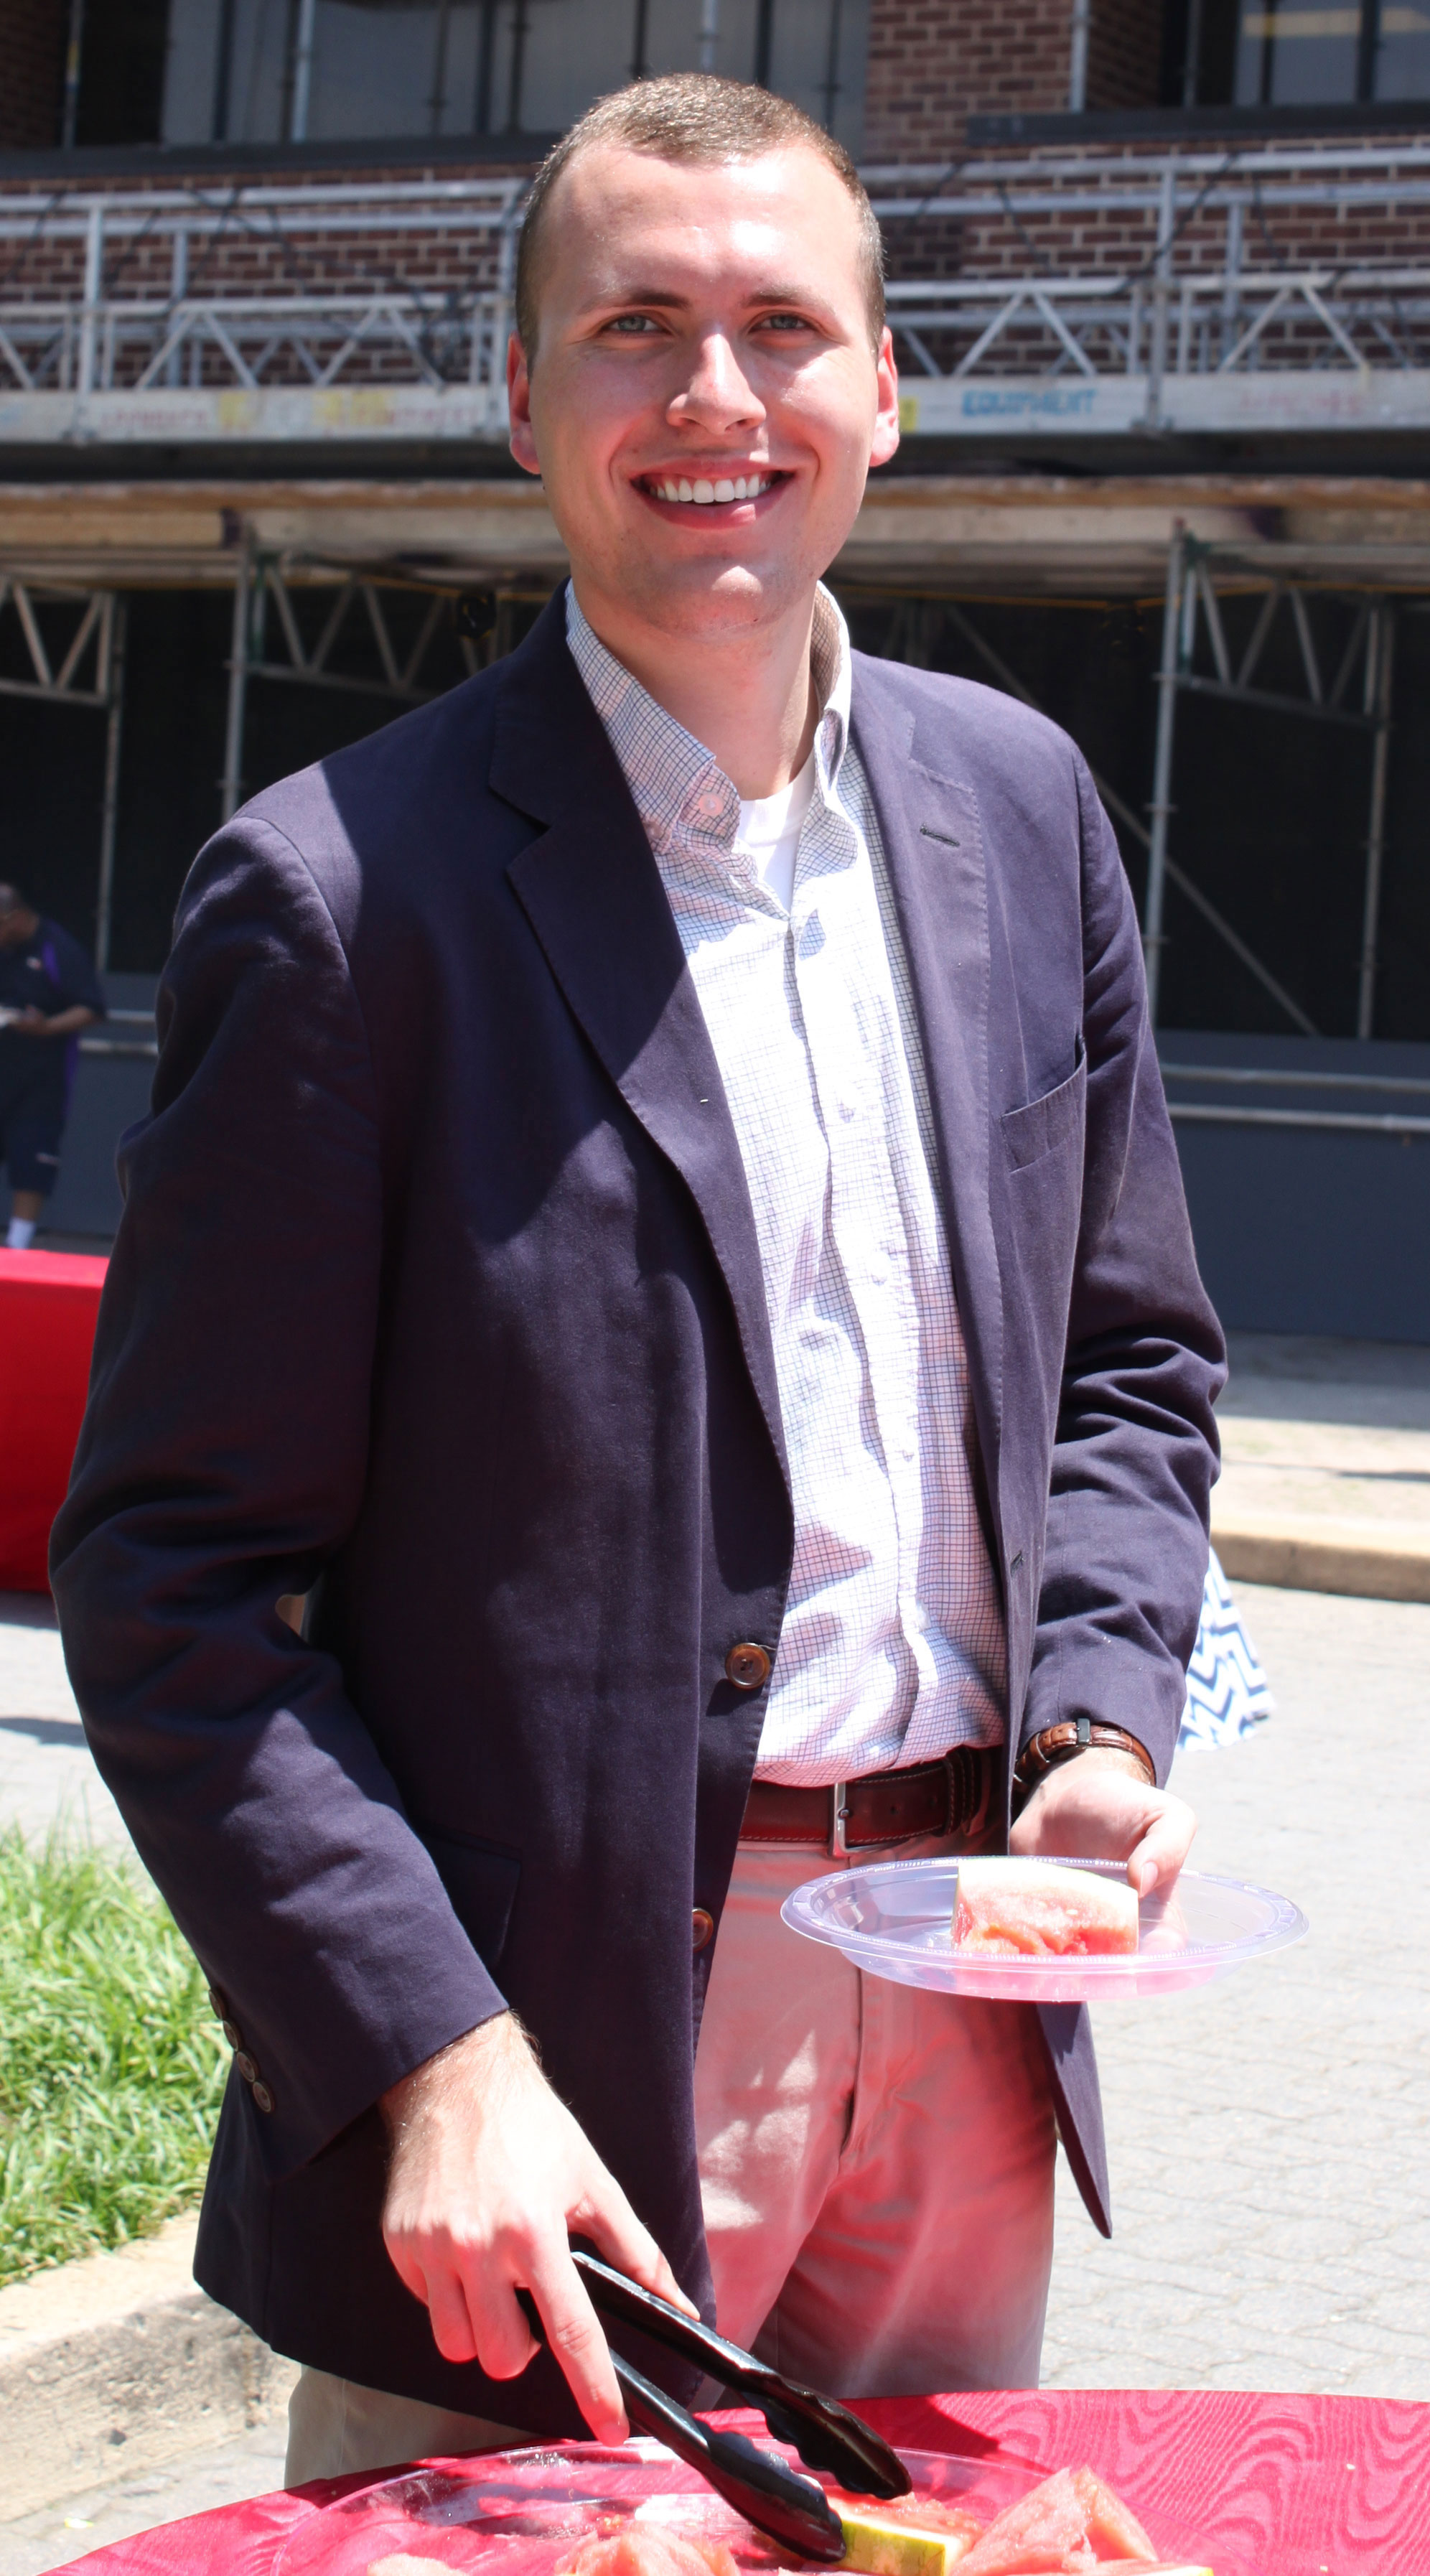 USA Rice intern Ethan-Cartwright eats watermelon at building cookout